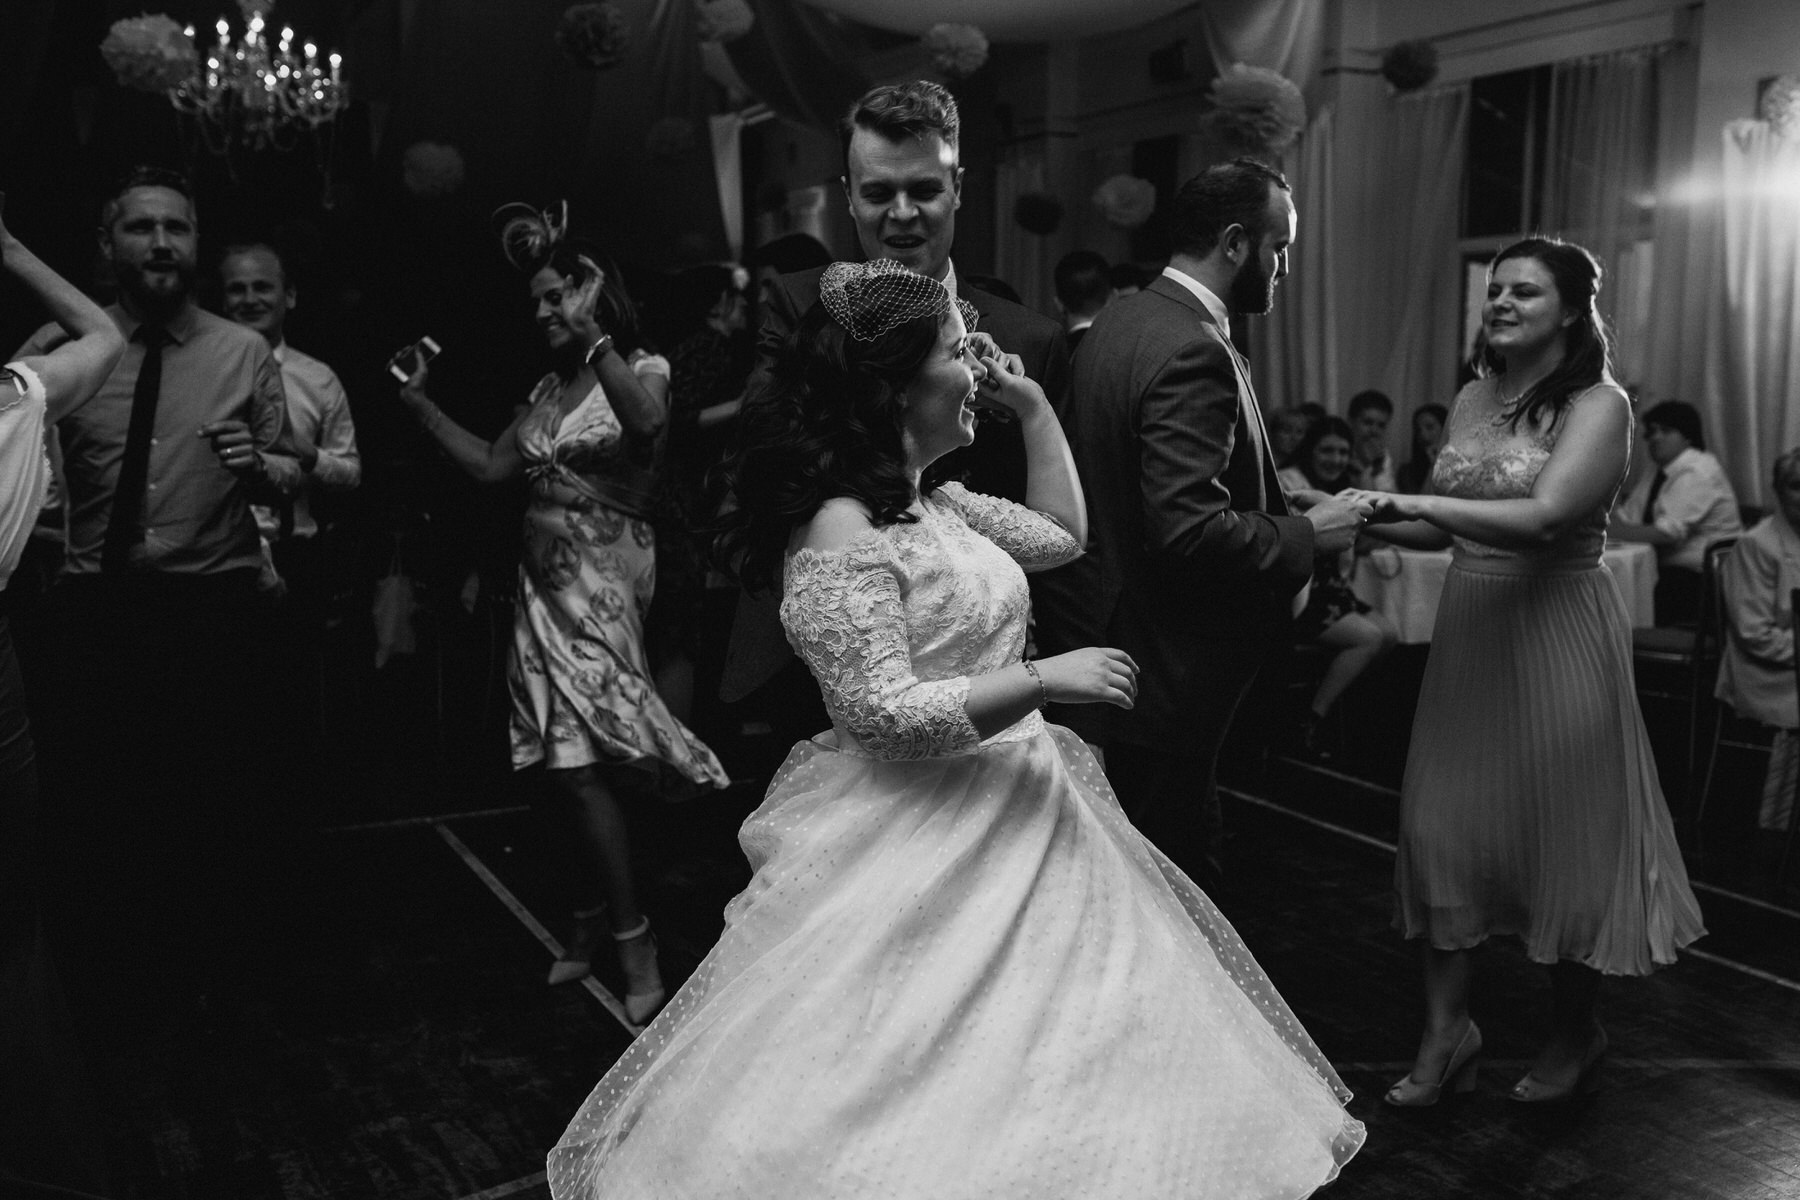 260 first dance school hall wedding reception London.jpg